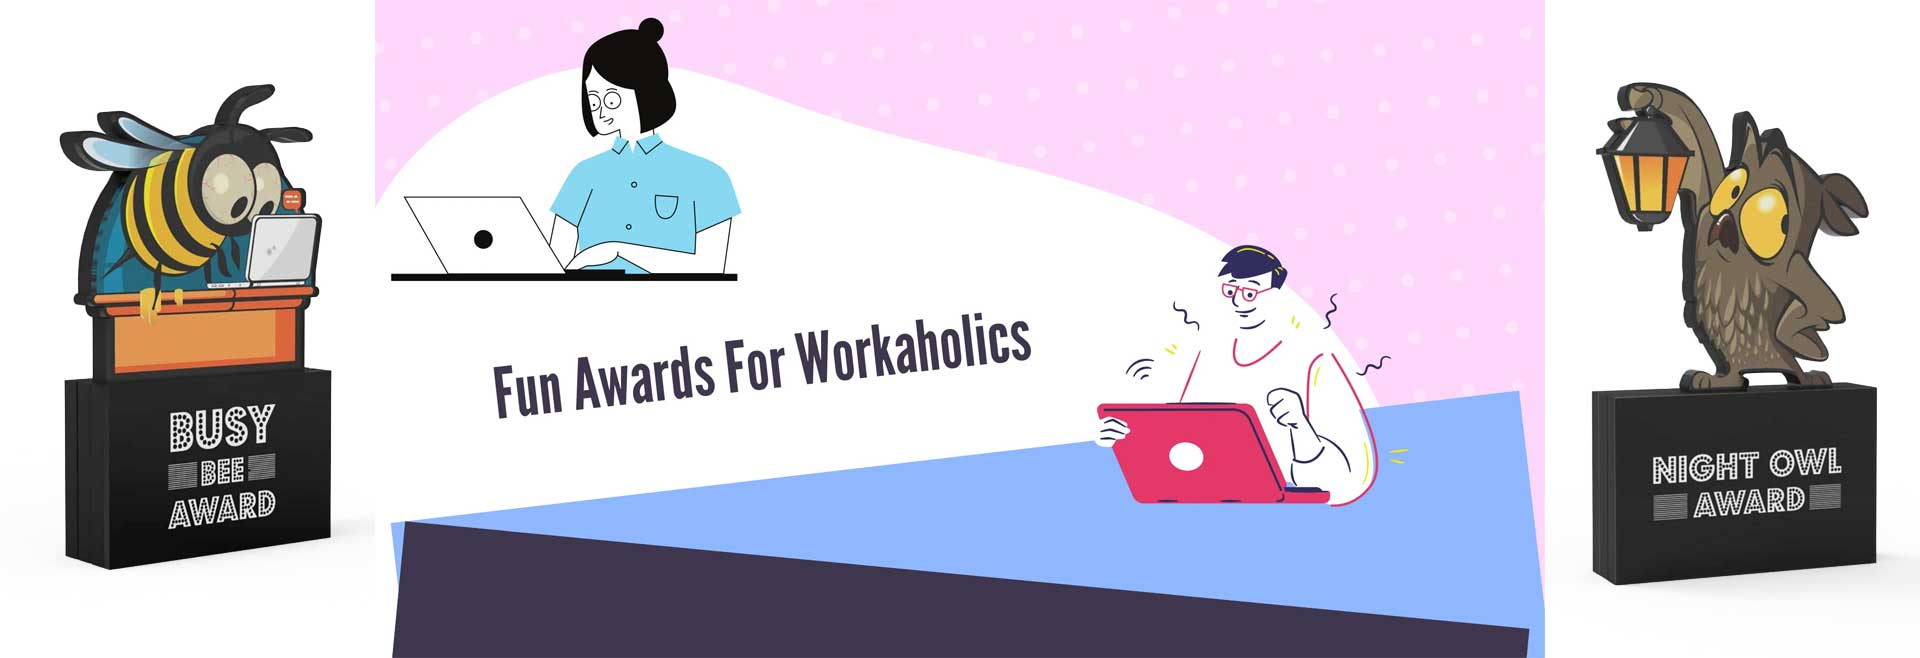 Fun Awards for Workaholics